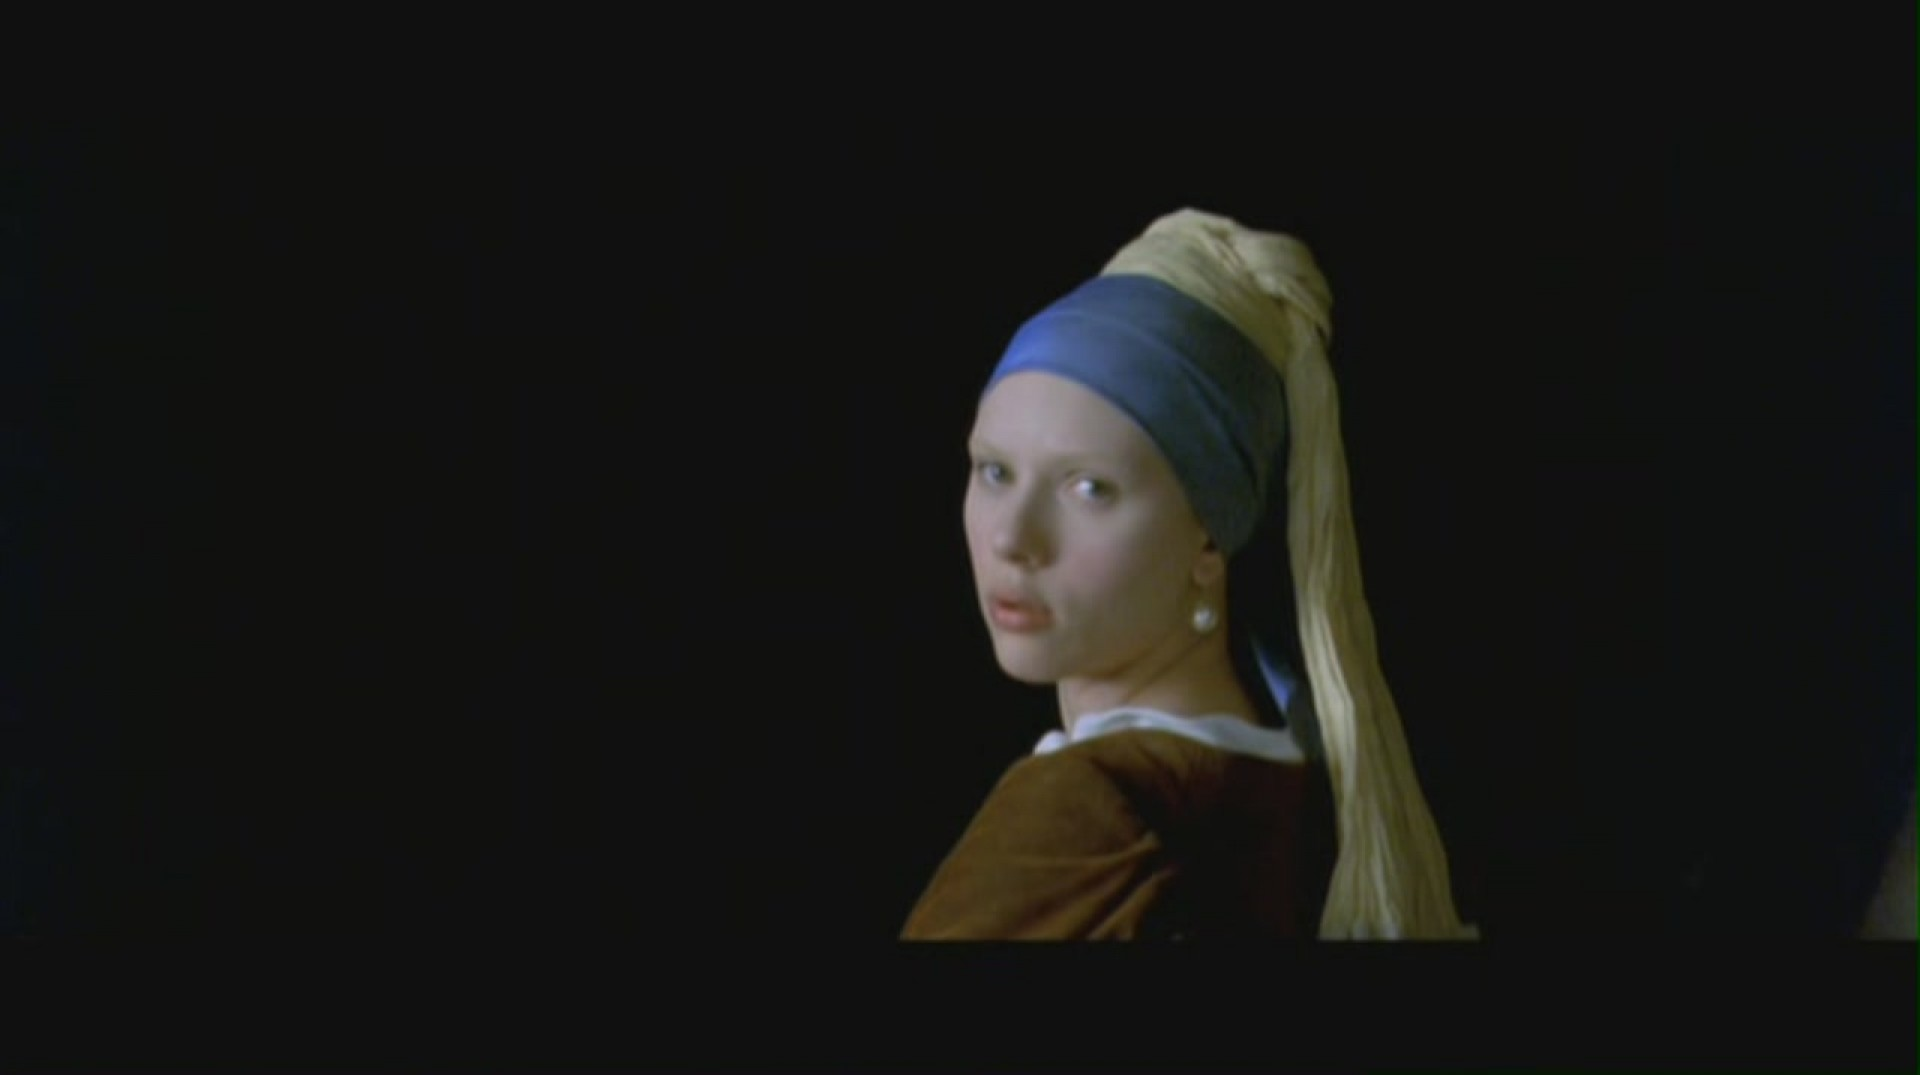 016 Girl With Pearl Earring Scarlett Johansson Essay Outstanding A The Movie Film Review 1920